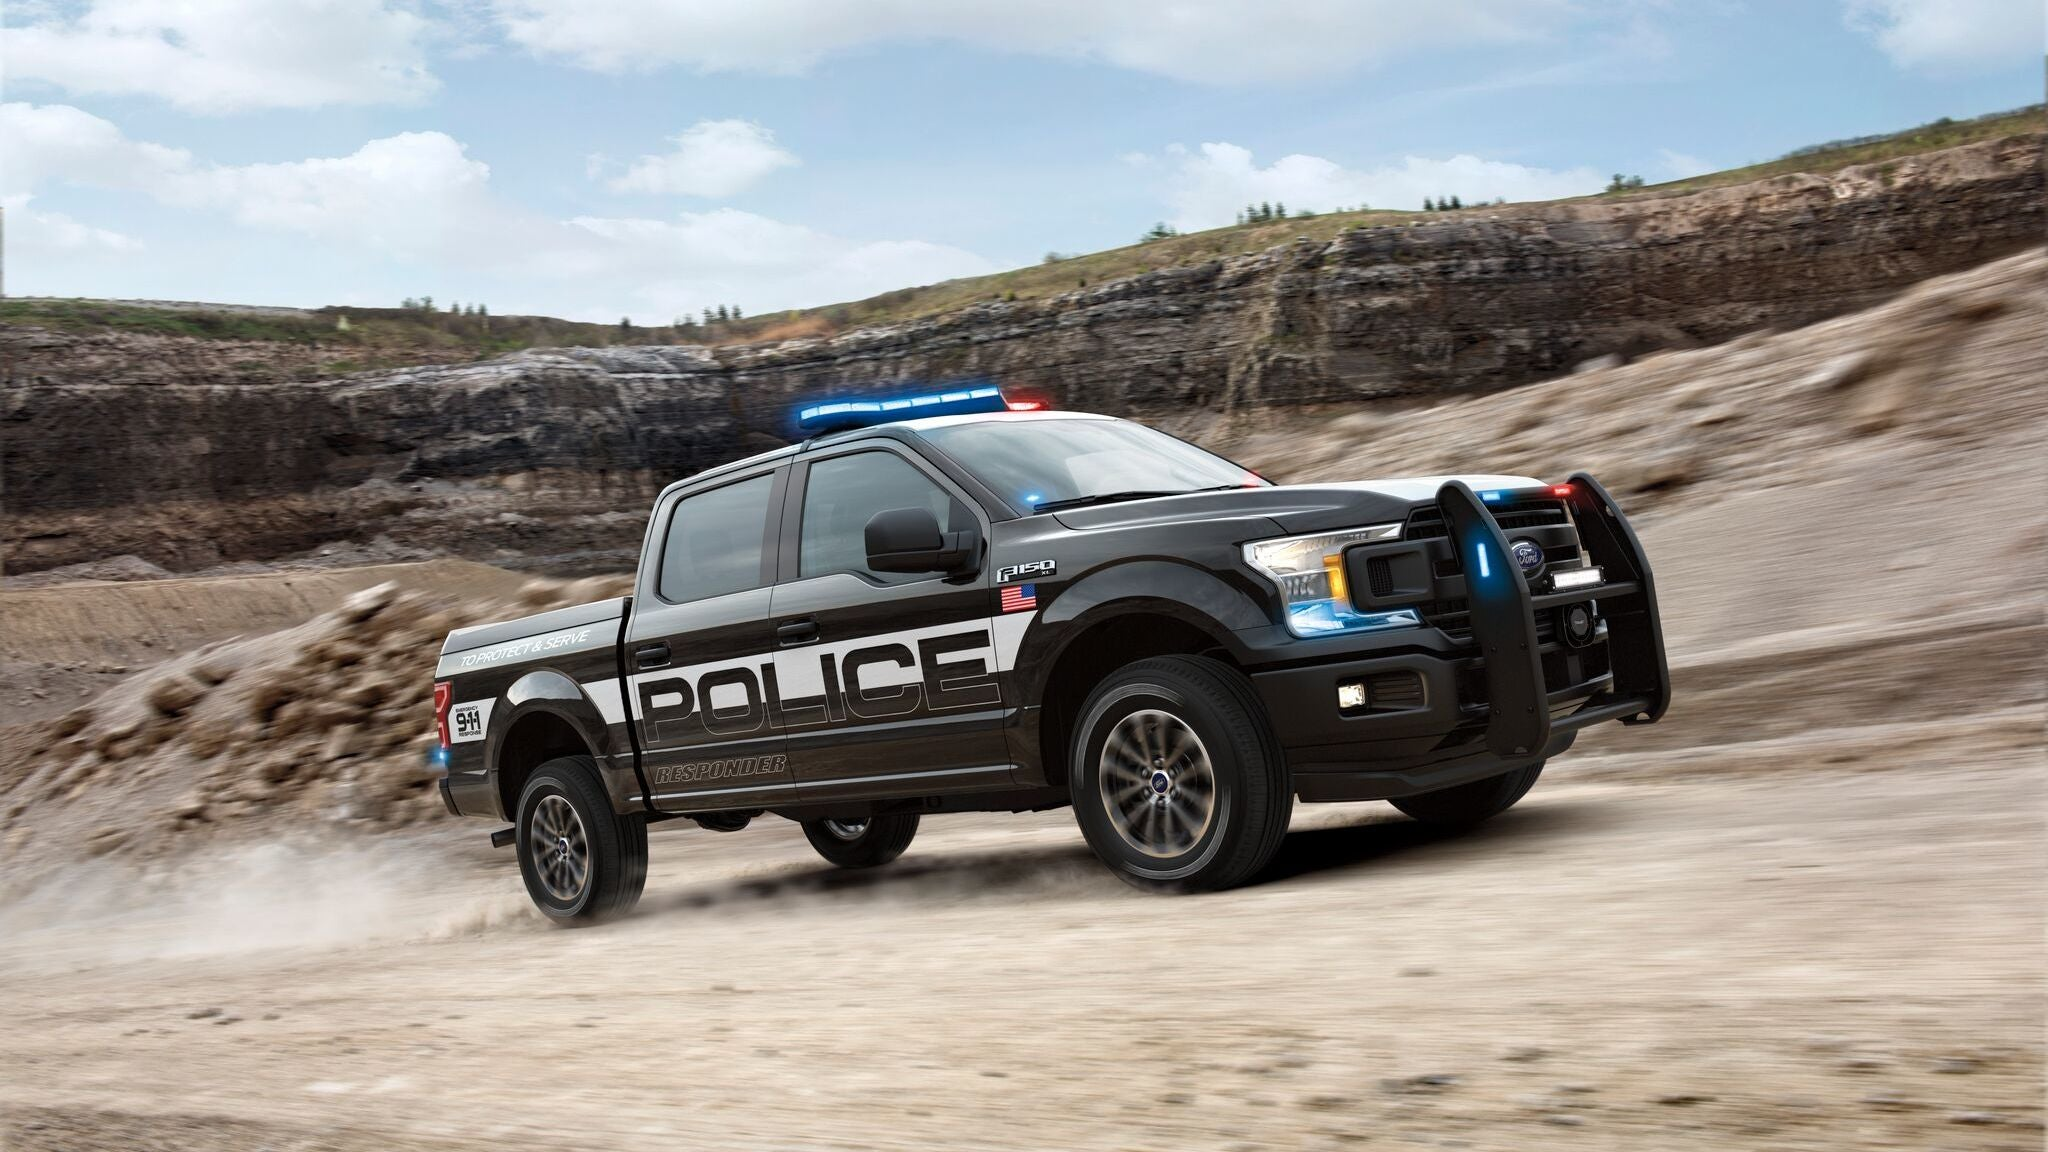 Ford has been extremely rude lately developing a new generation of police pursuit vehicles and now itu0027s introduced the F-150 Police Responder. & The New Ford F-150 Police Responder Is A Police Car That Can ... markmcfarlin.com